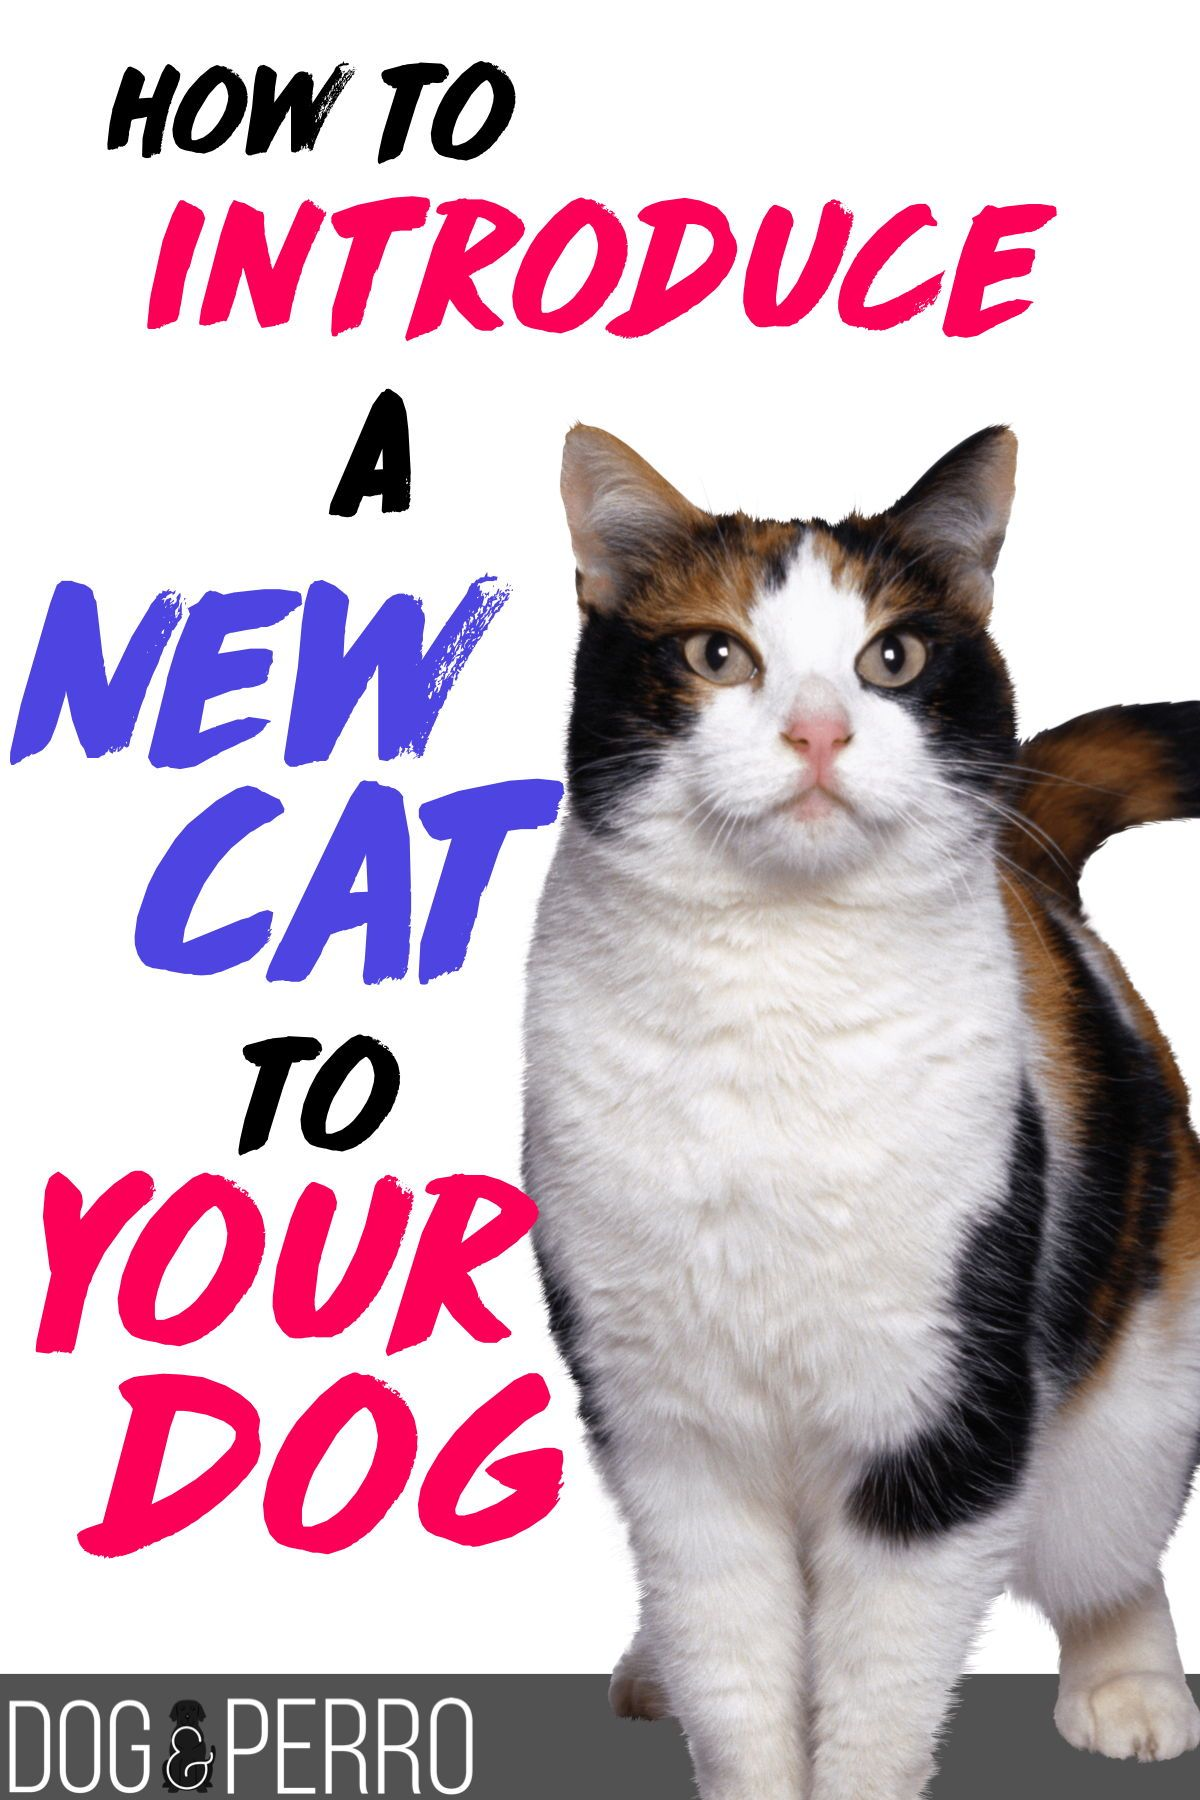 4 Simple Tips to Introduce a New Cat to your Dog